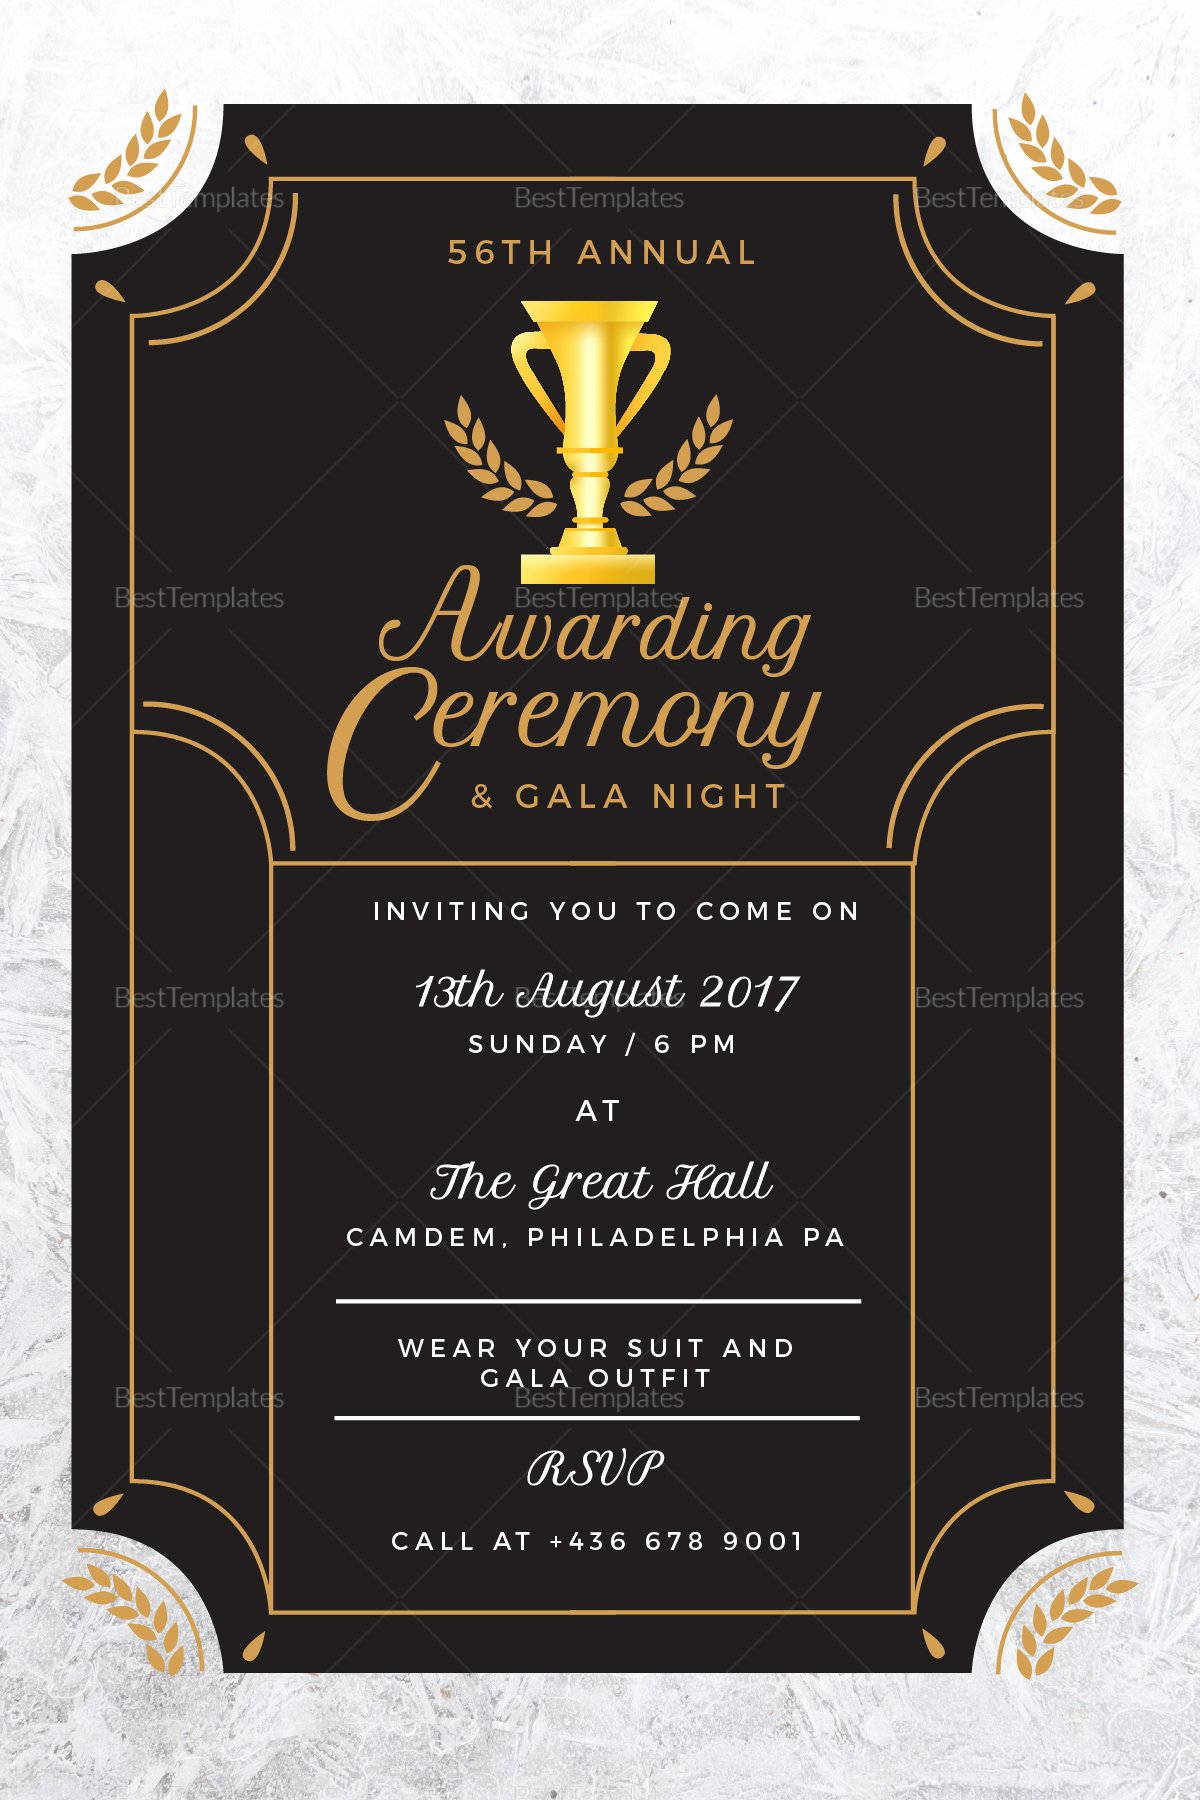 Awards Ceremony Program Sample Lovely Annual Award Ceremony Invitation Design Template In Psd Word Publisher Illustrator Indesign